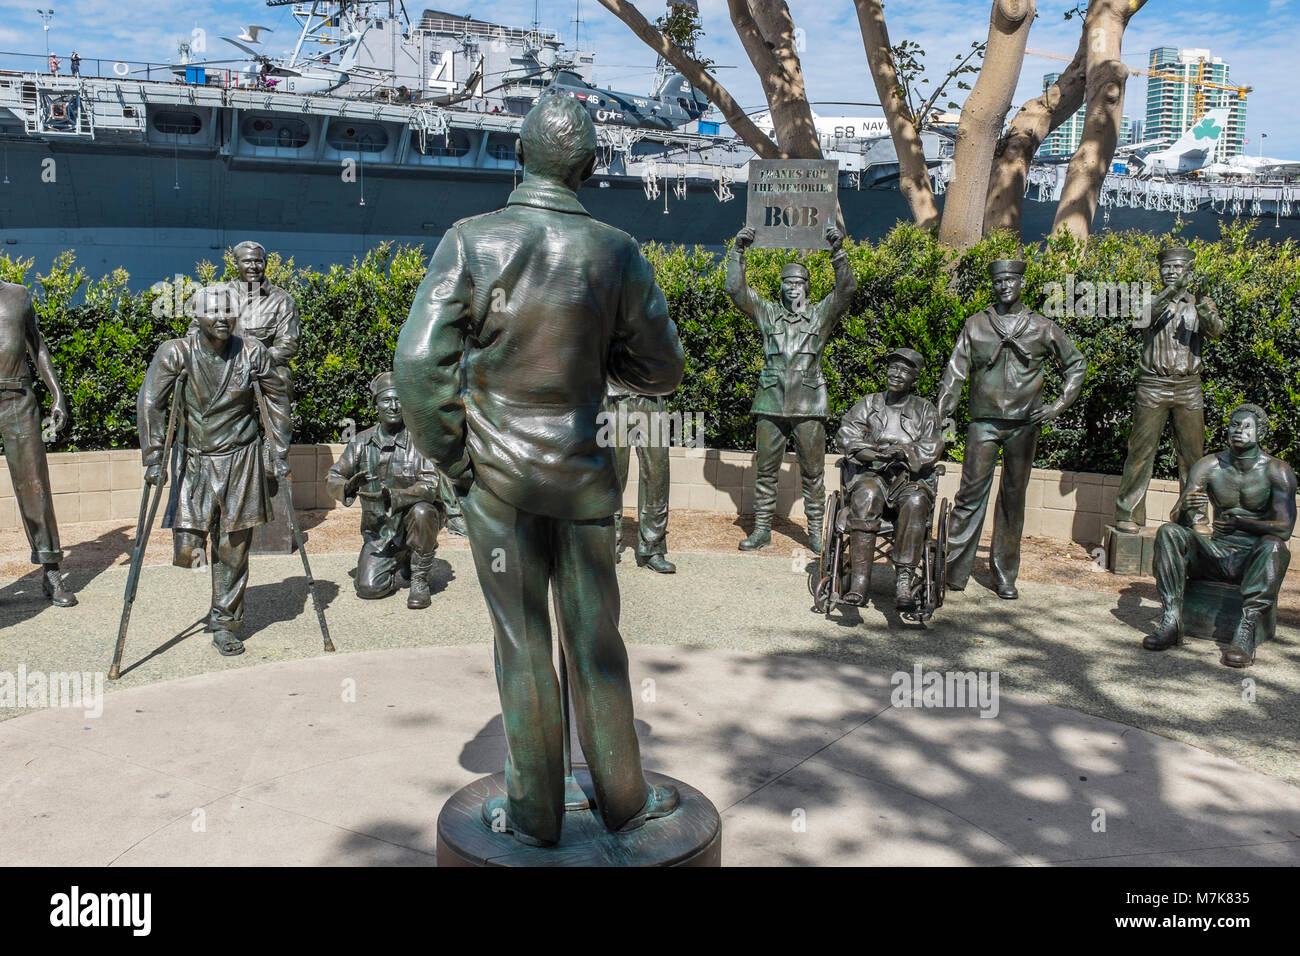 SAN DIEGO, CALIFORNIA, USA - National Statue to Bob Hope and the Military located on Harbor Drive in Downtown San - Stock Image